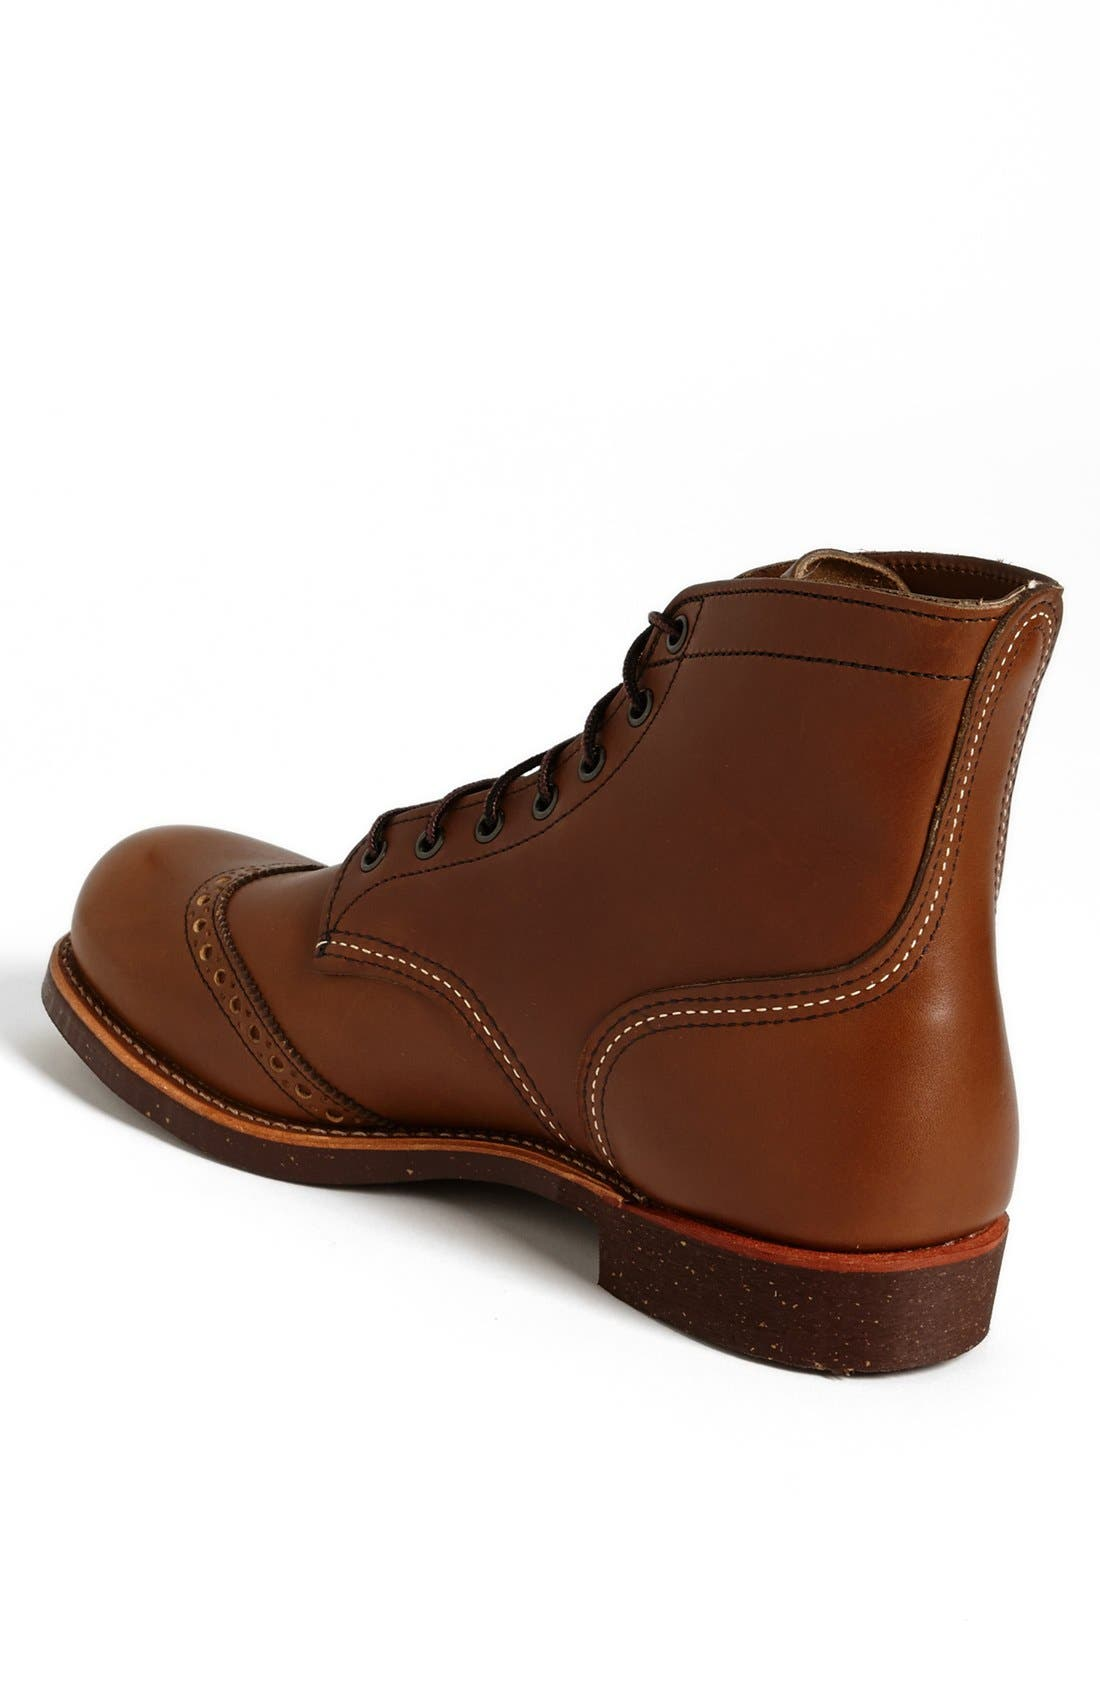 Alternate Image 2  - Red Wing 'Brogue Ranger' Wingtip Boot